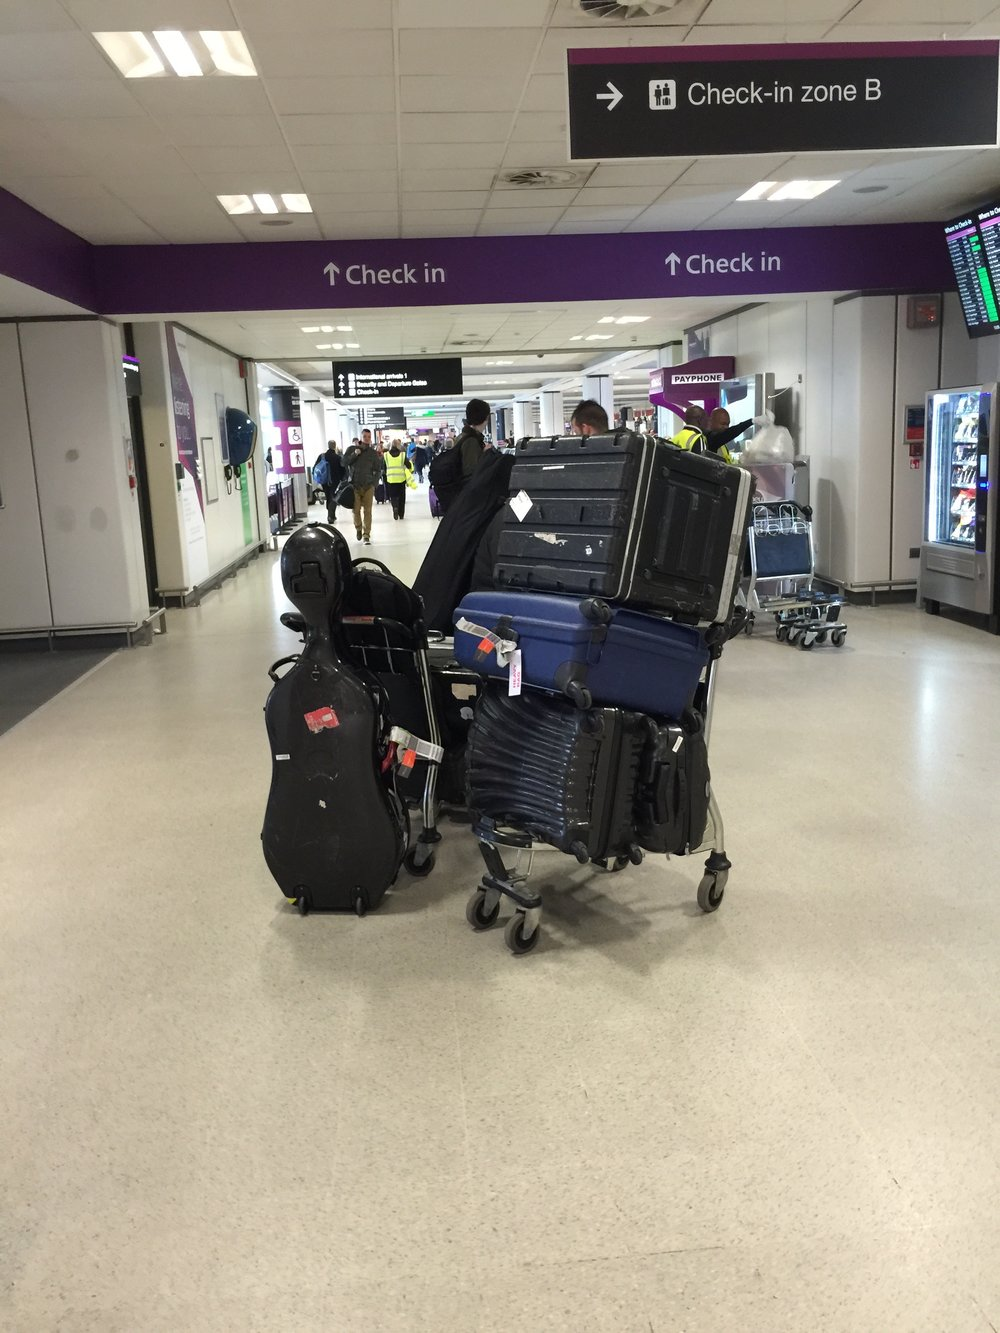 Stringfever electric quartet london airport luggage.jpg